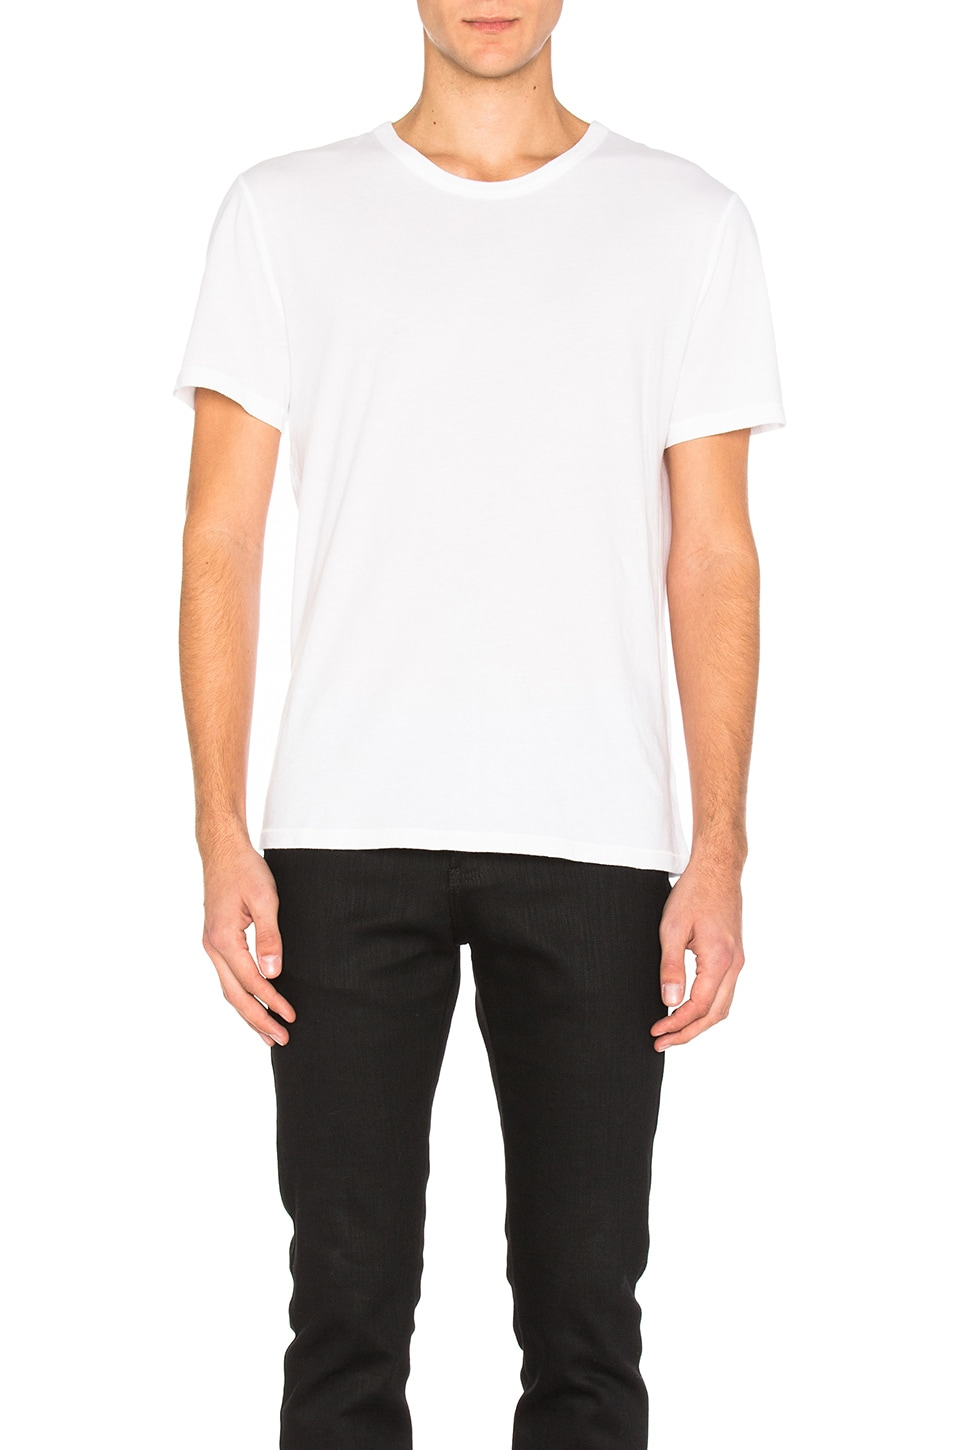 Classic Short Sleeve Tee by T by Alexander Wang